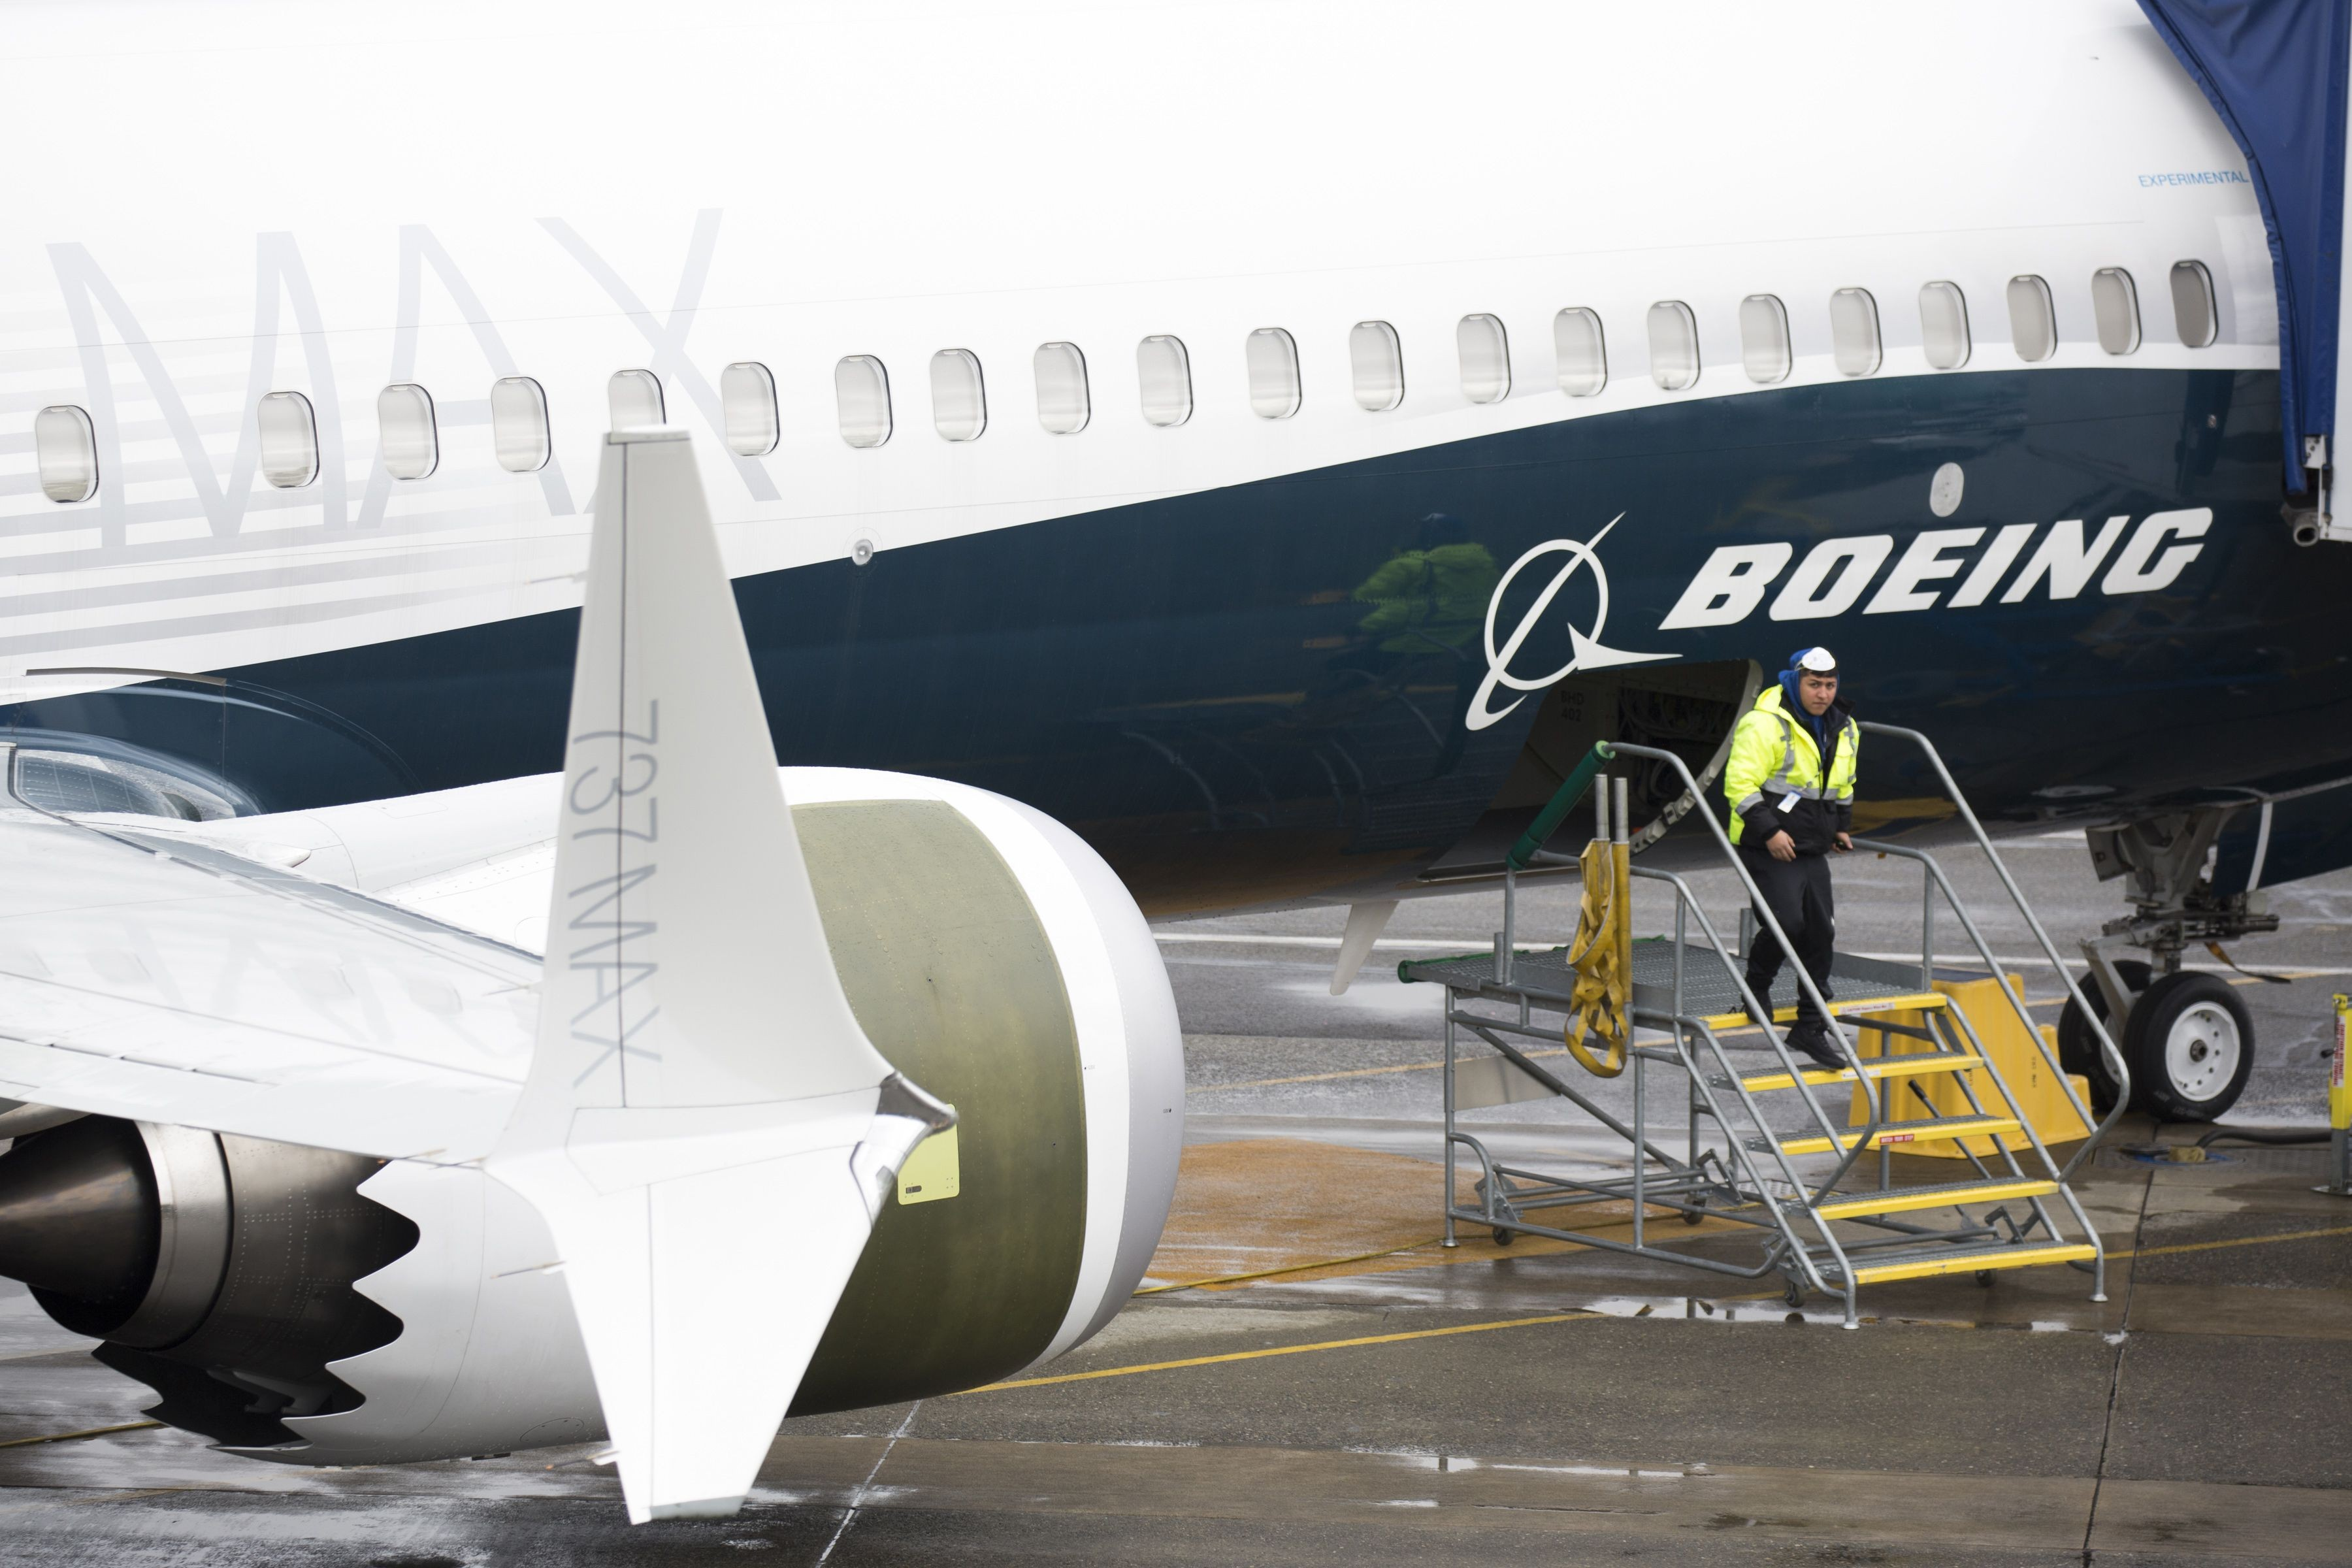 Boeing says it needs more time to upgrade its software to make the